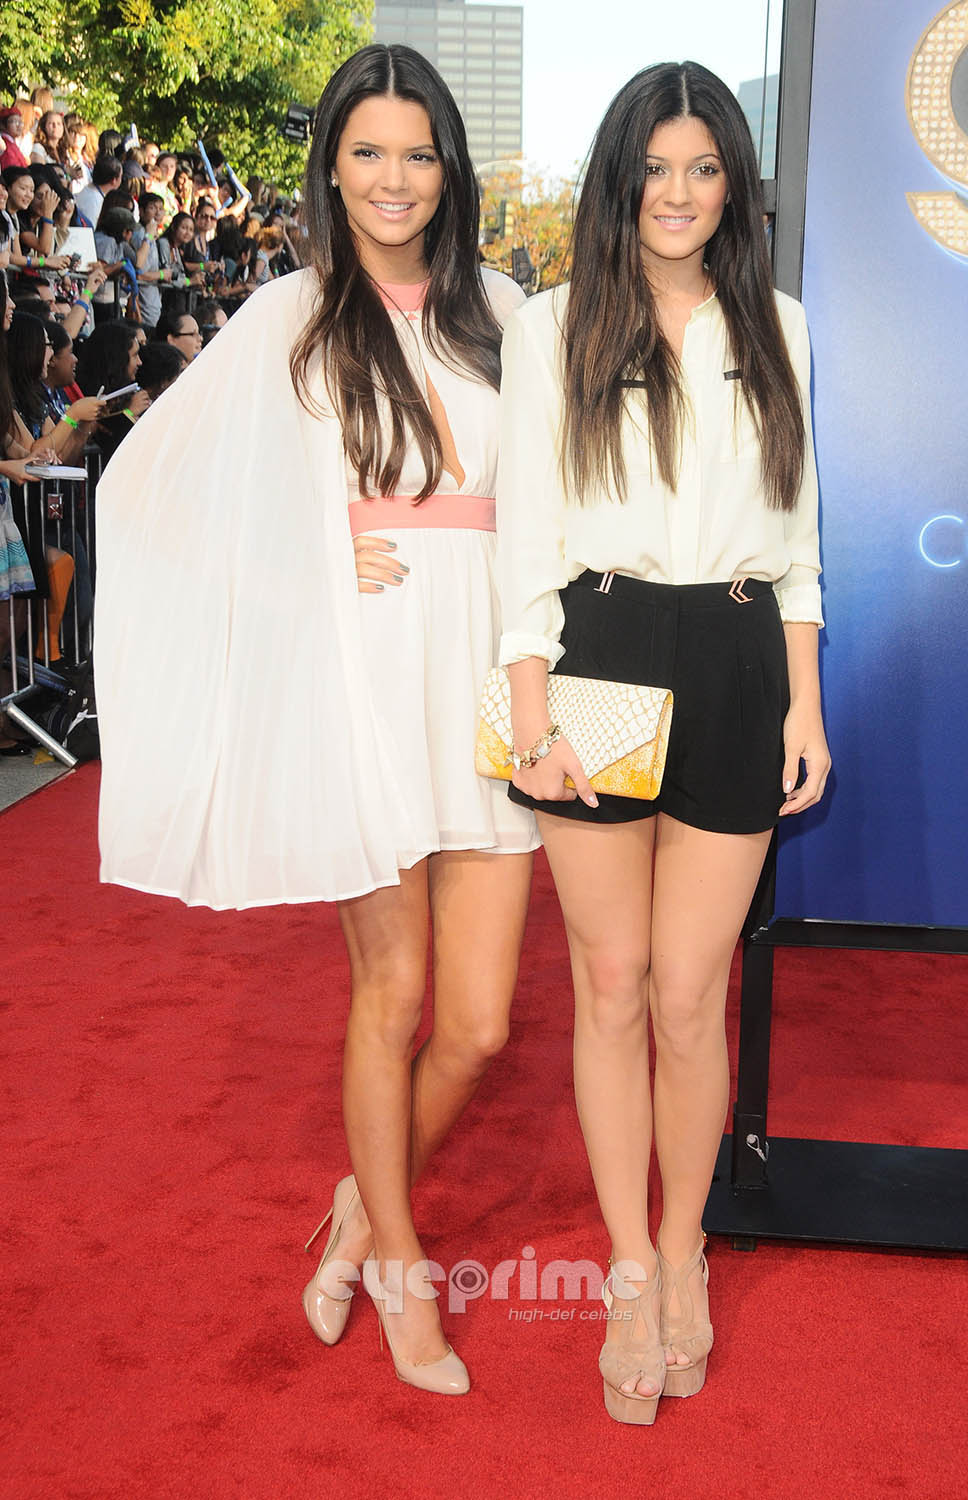 kendall and kylie jenner glee 3d premiere in westwood. Black Bedroom Furniture Sets. Home Design Ideas